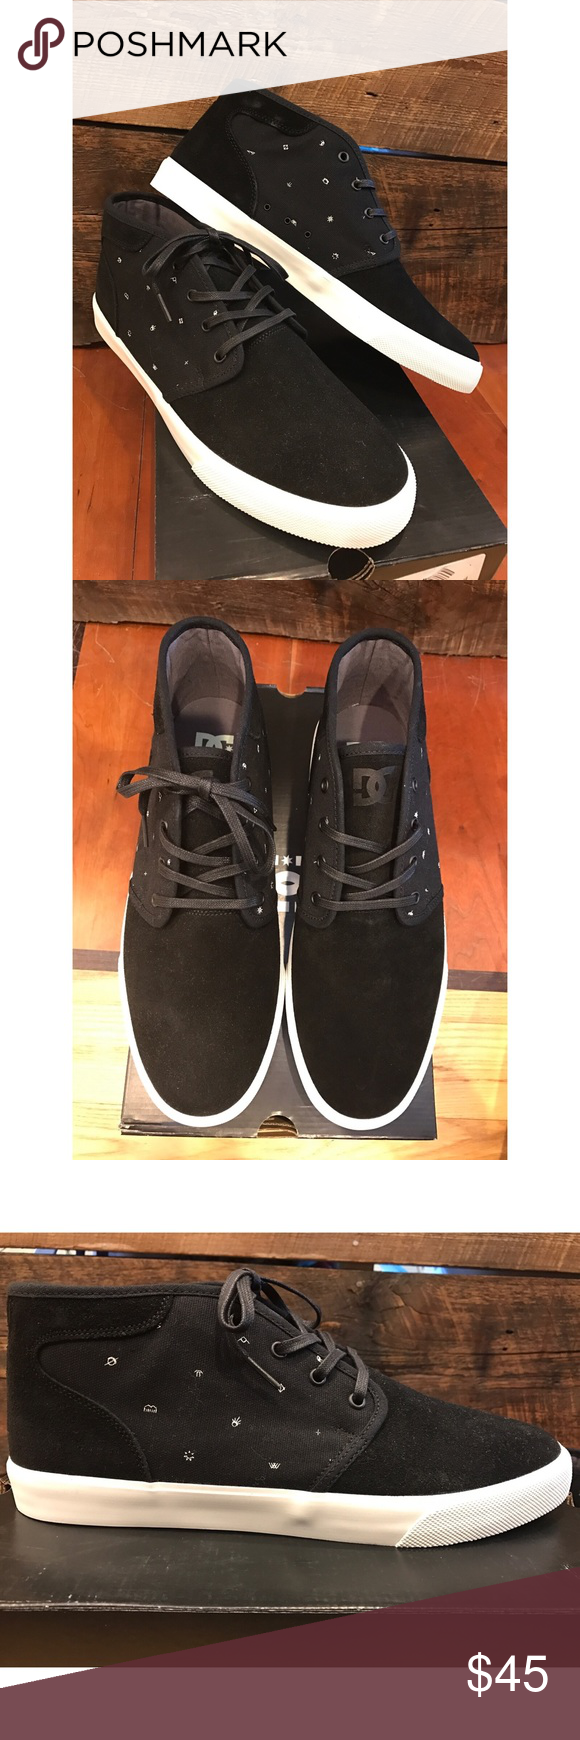 Dc Shoes Leather Upper Rubber Sole